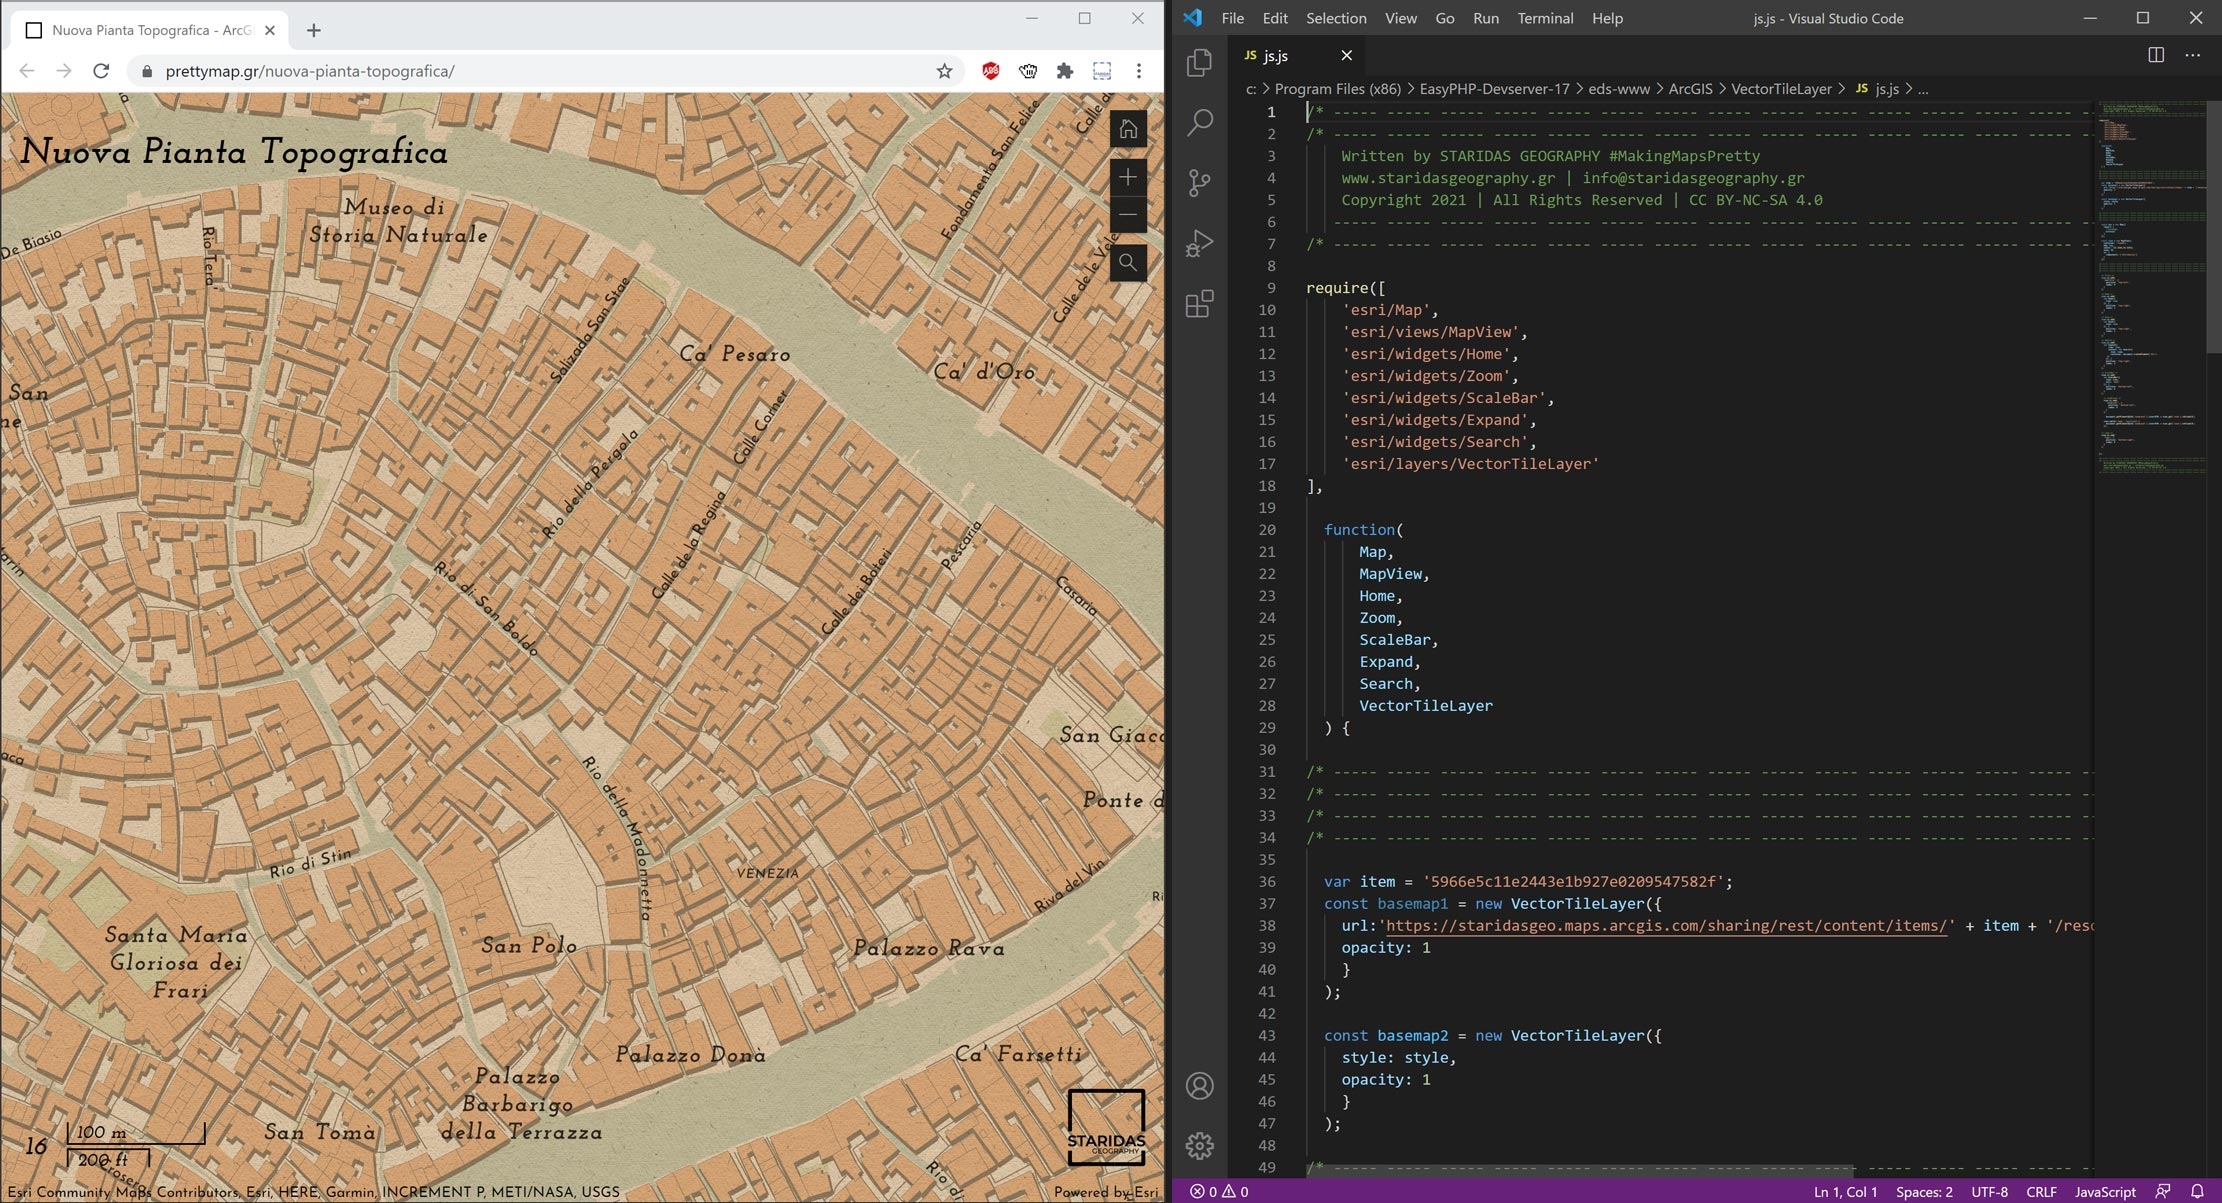 Picture 8: The Nuova Pianta Topografica WebMap, made with the ArcGIS API for JavaScript v4